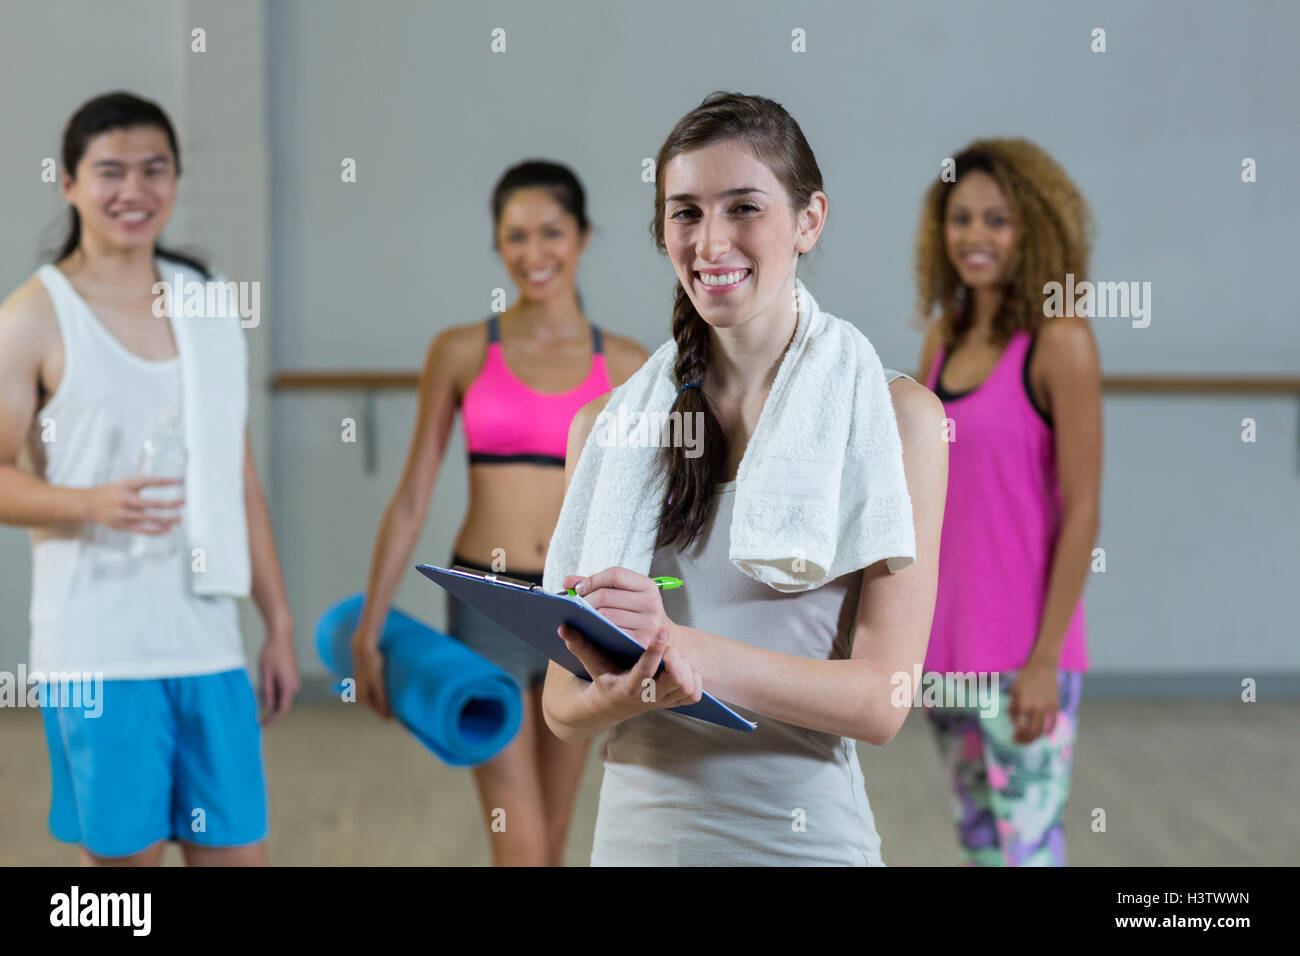 Portrait of female trainer holding clipboard with fitness class in background - Stock Image